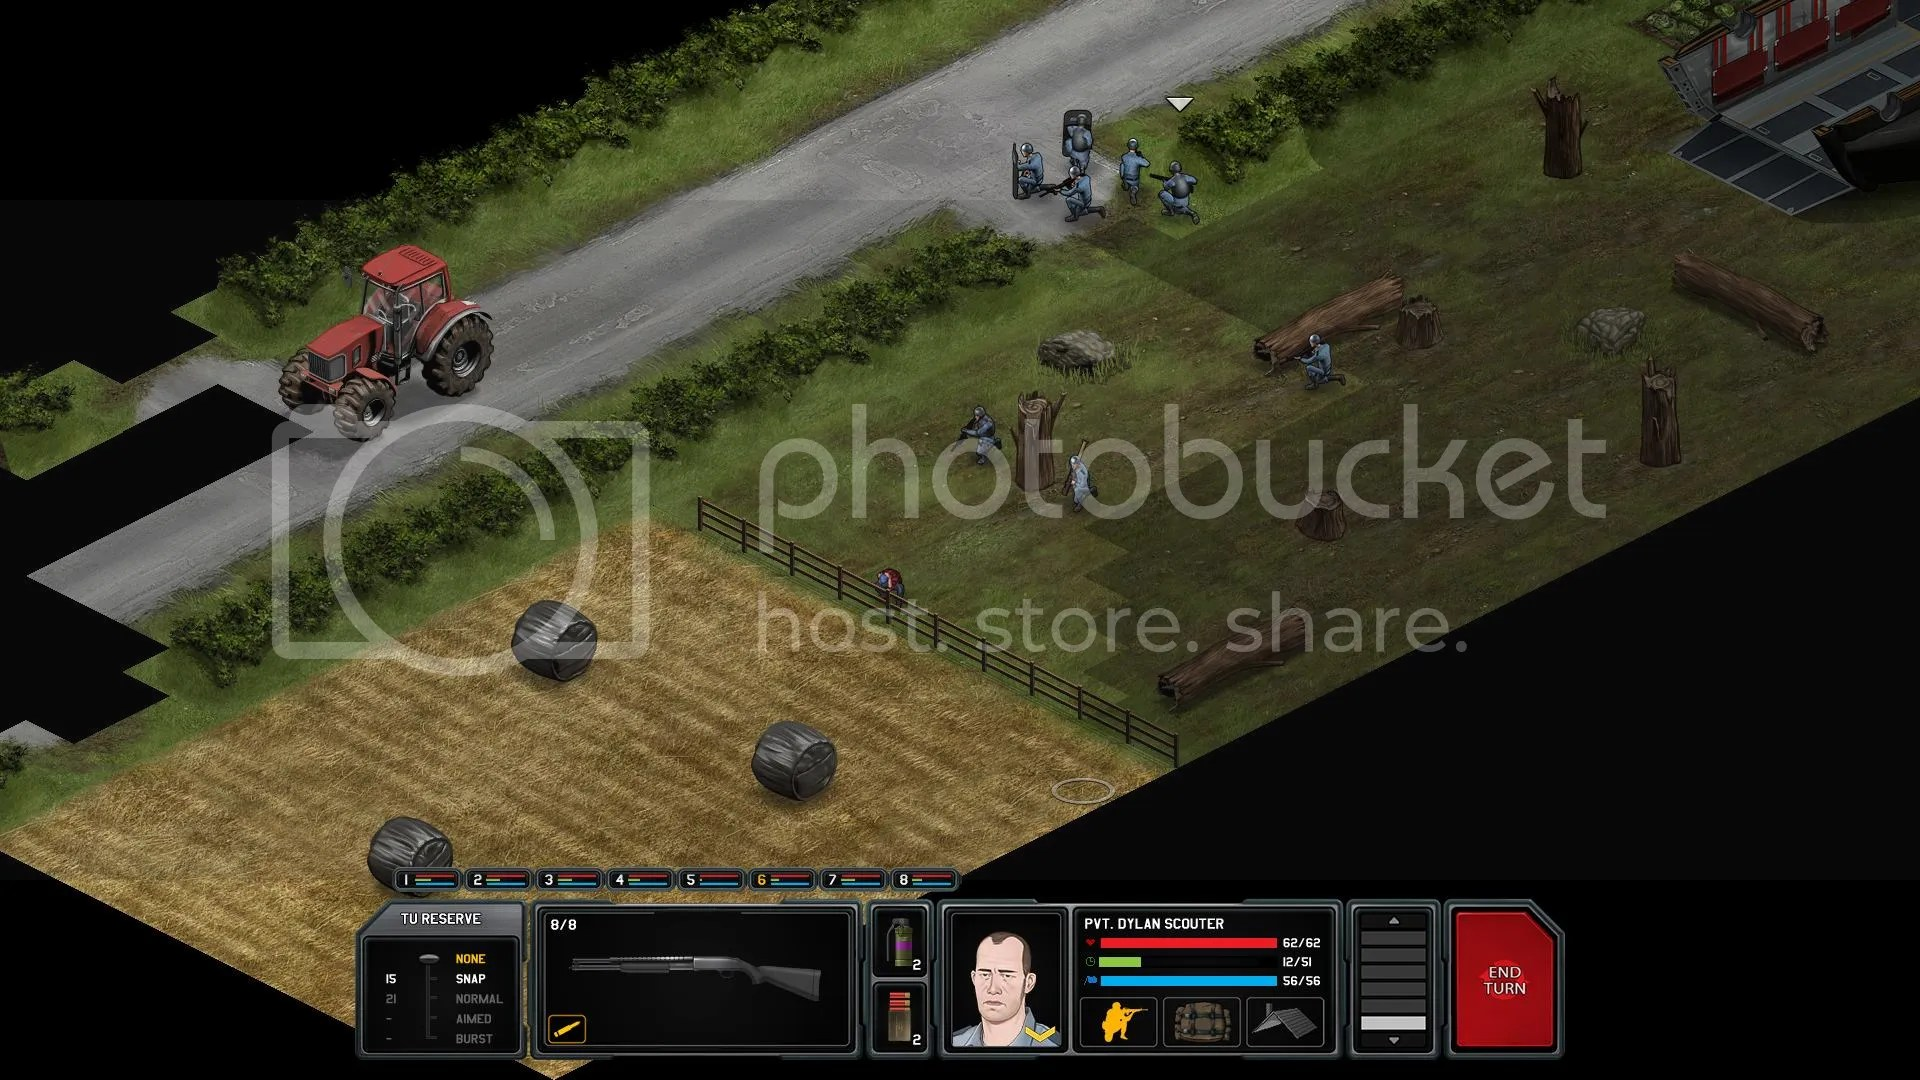 Tractor spotted!